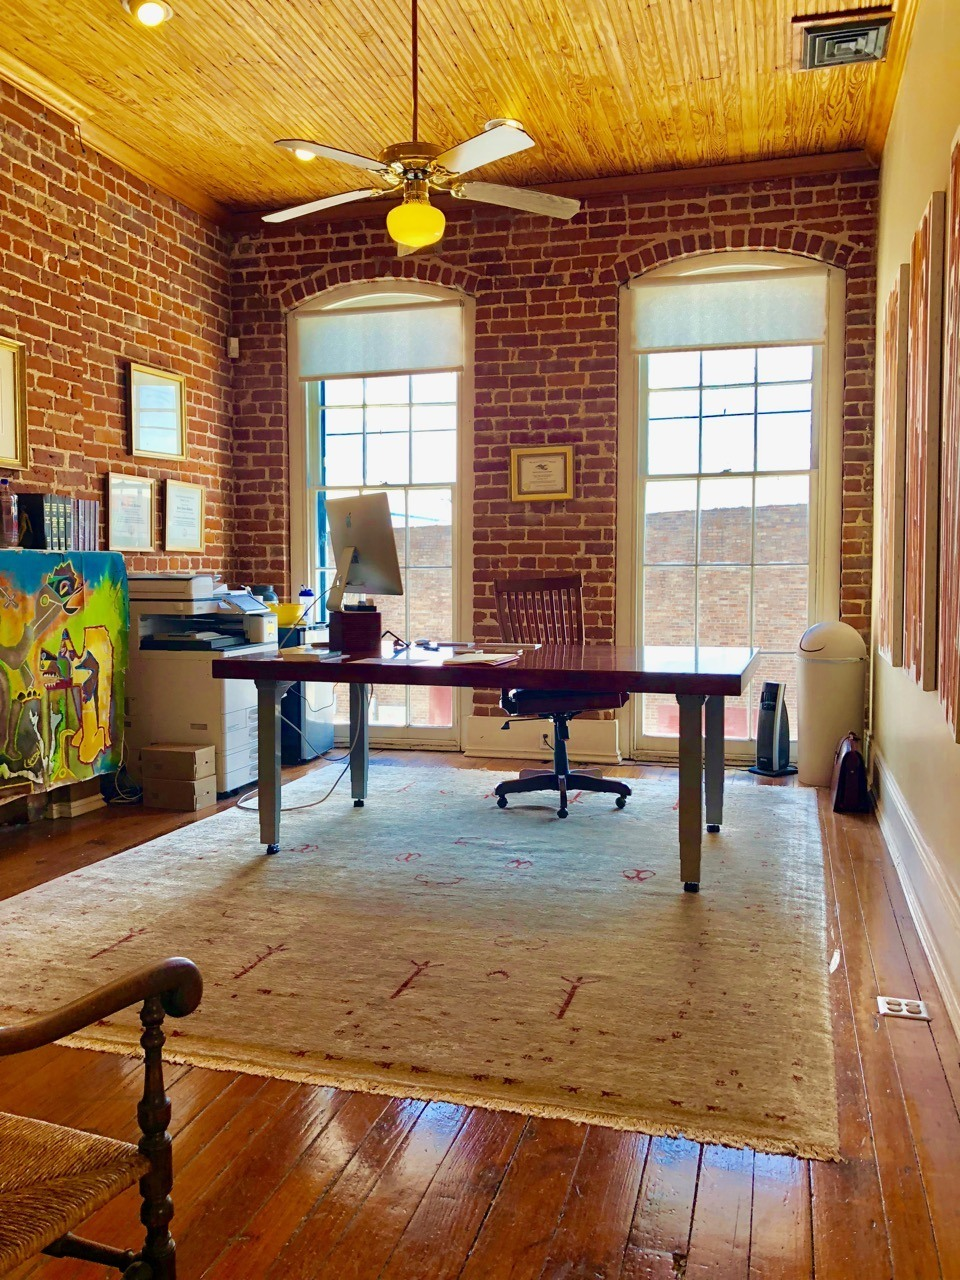 Office room with meeting table desk and chair in windows for New Orleans Legal LLC and Attorney Peter J. Diiorio